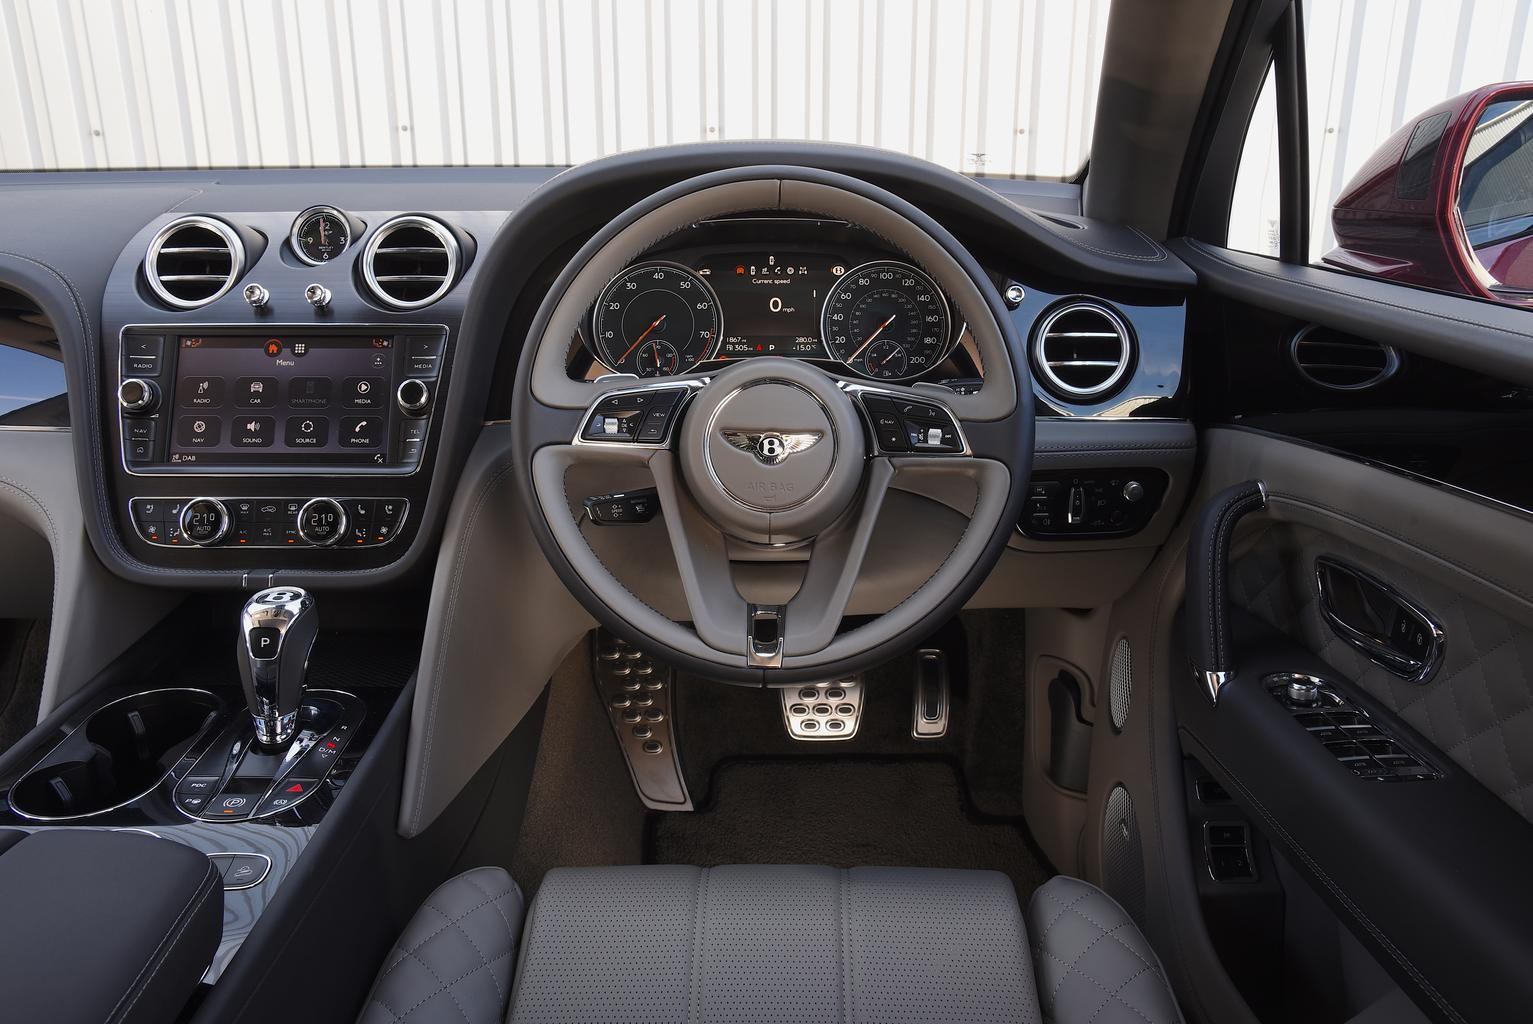 2018 Bentley Bentayga 4.0 V8 review – price, specs and release date